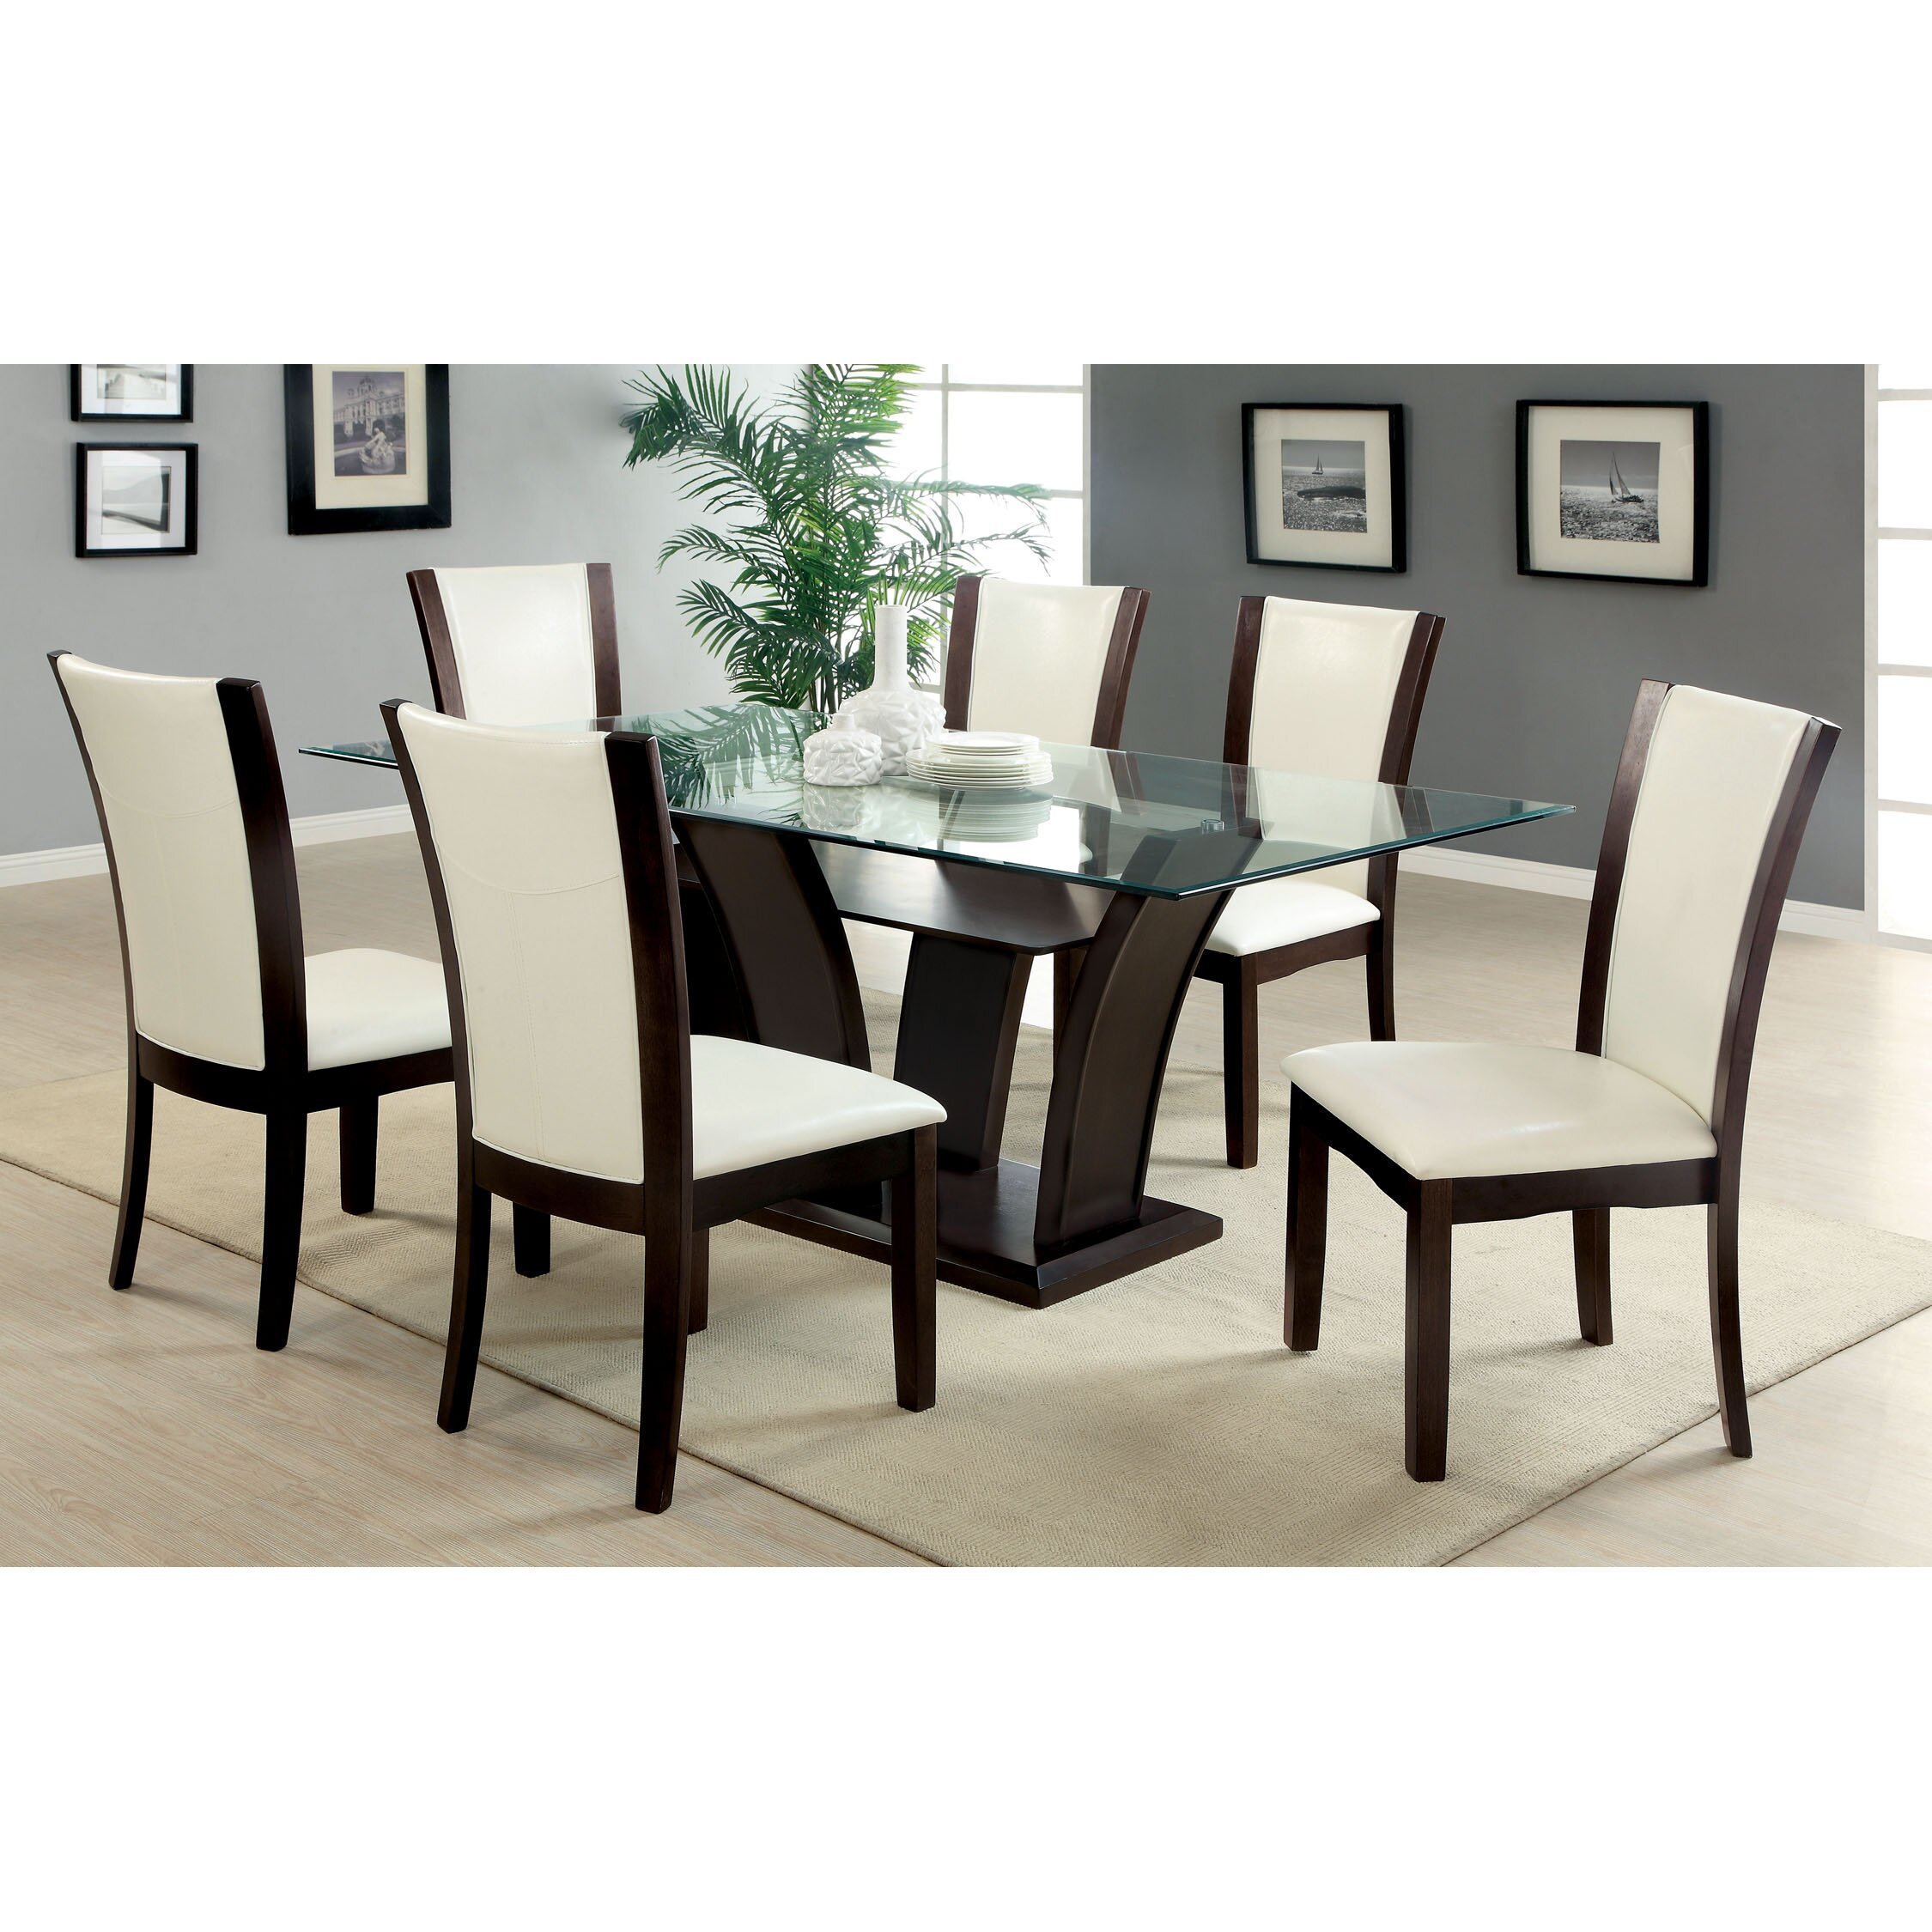 Hokku designs carmilla 7 piece dining set reviews wayfair Dining set design ideas